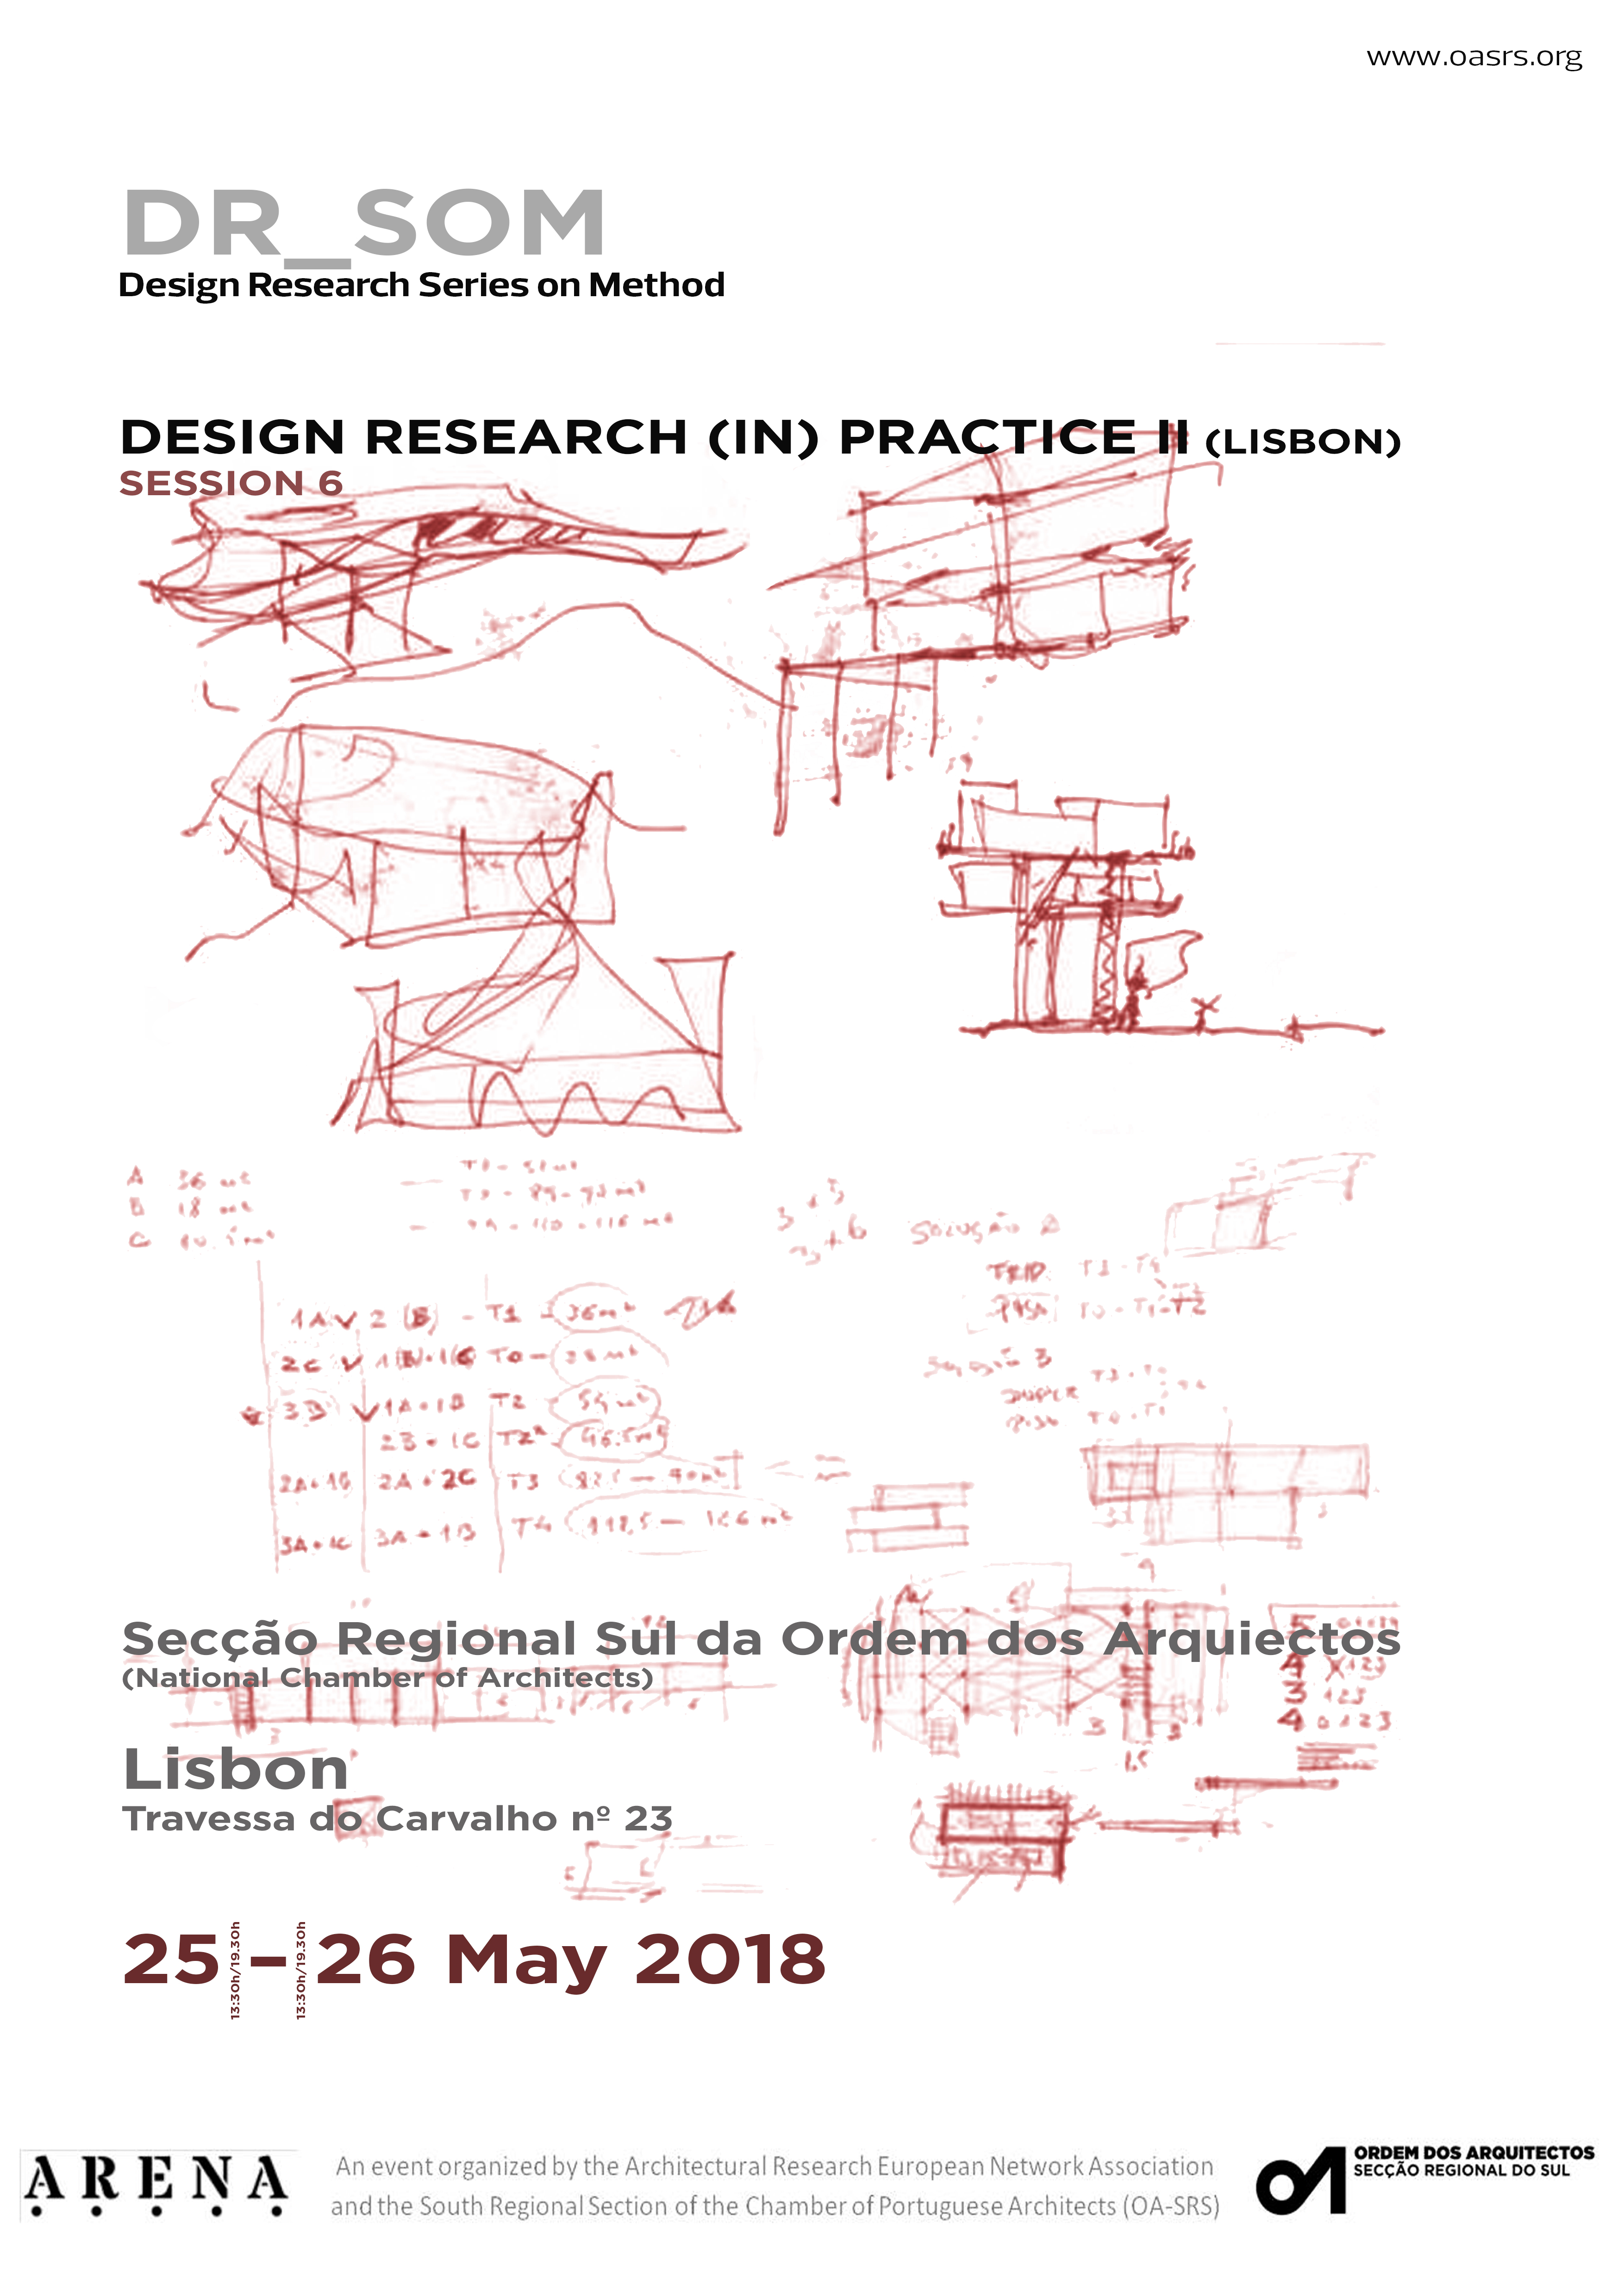 design research in practice ii lisbon 2018 may 25 26